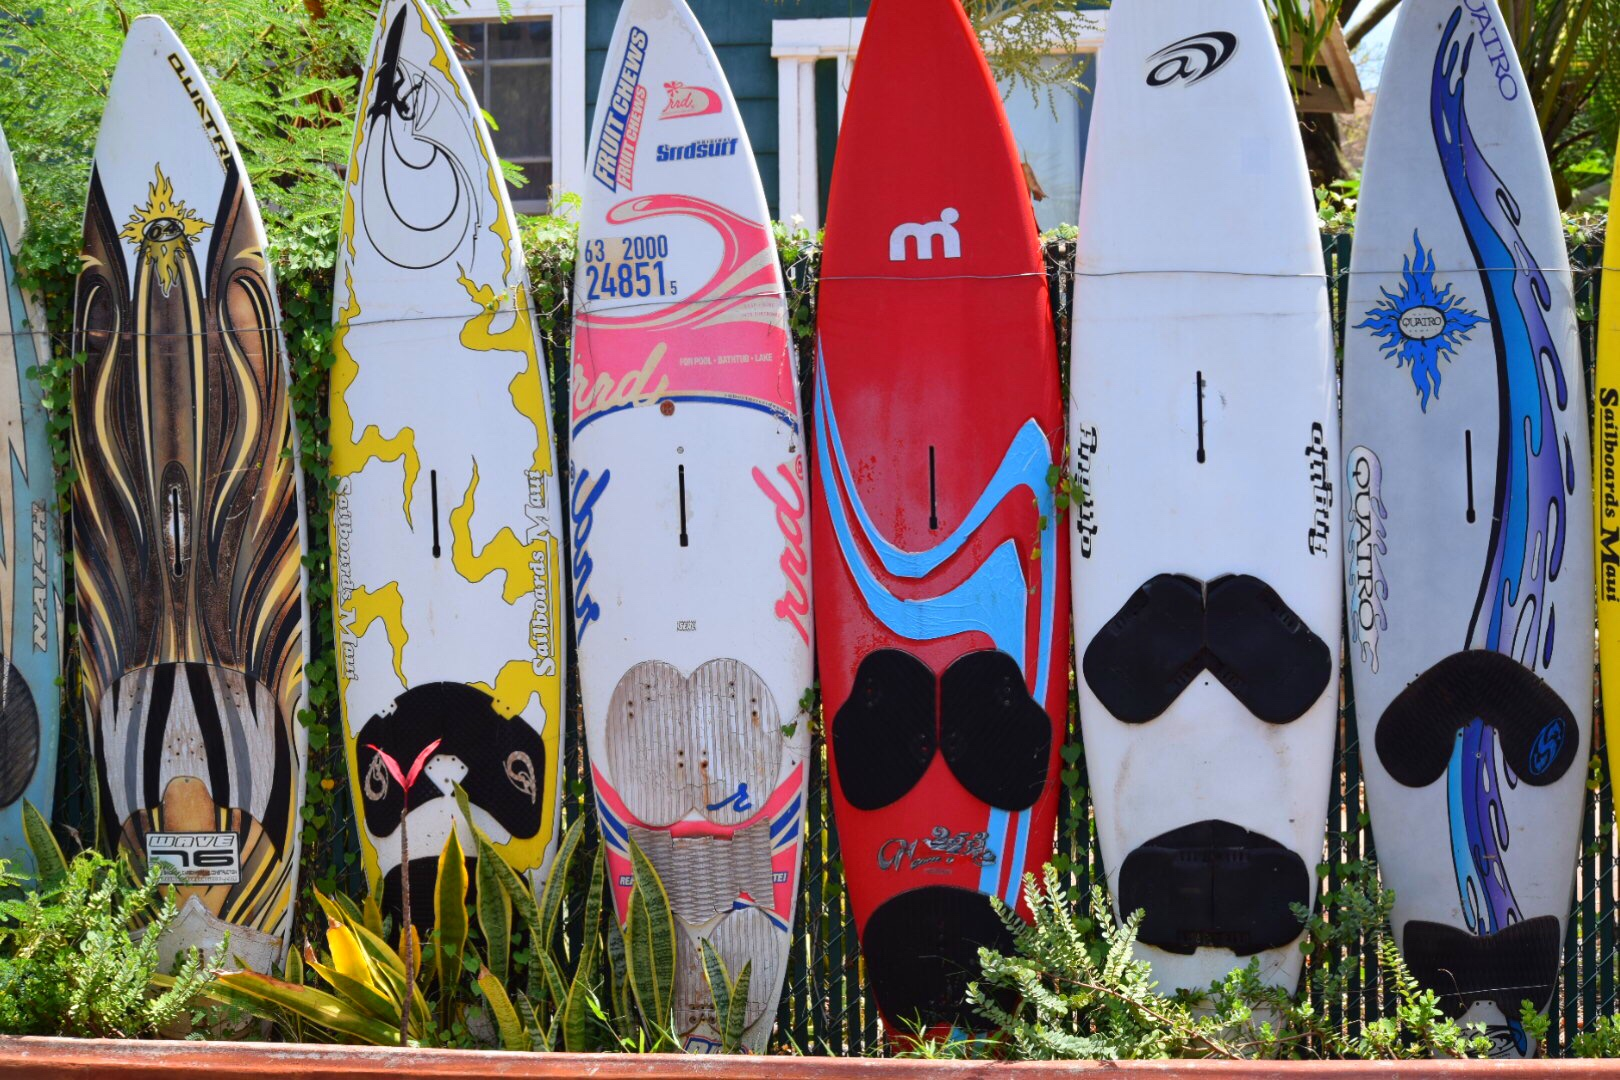 SURFBOARD, SURFBOARD IN PAIA - Muse Of Style